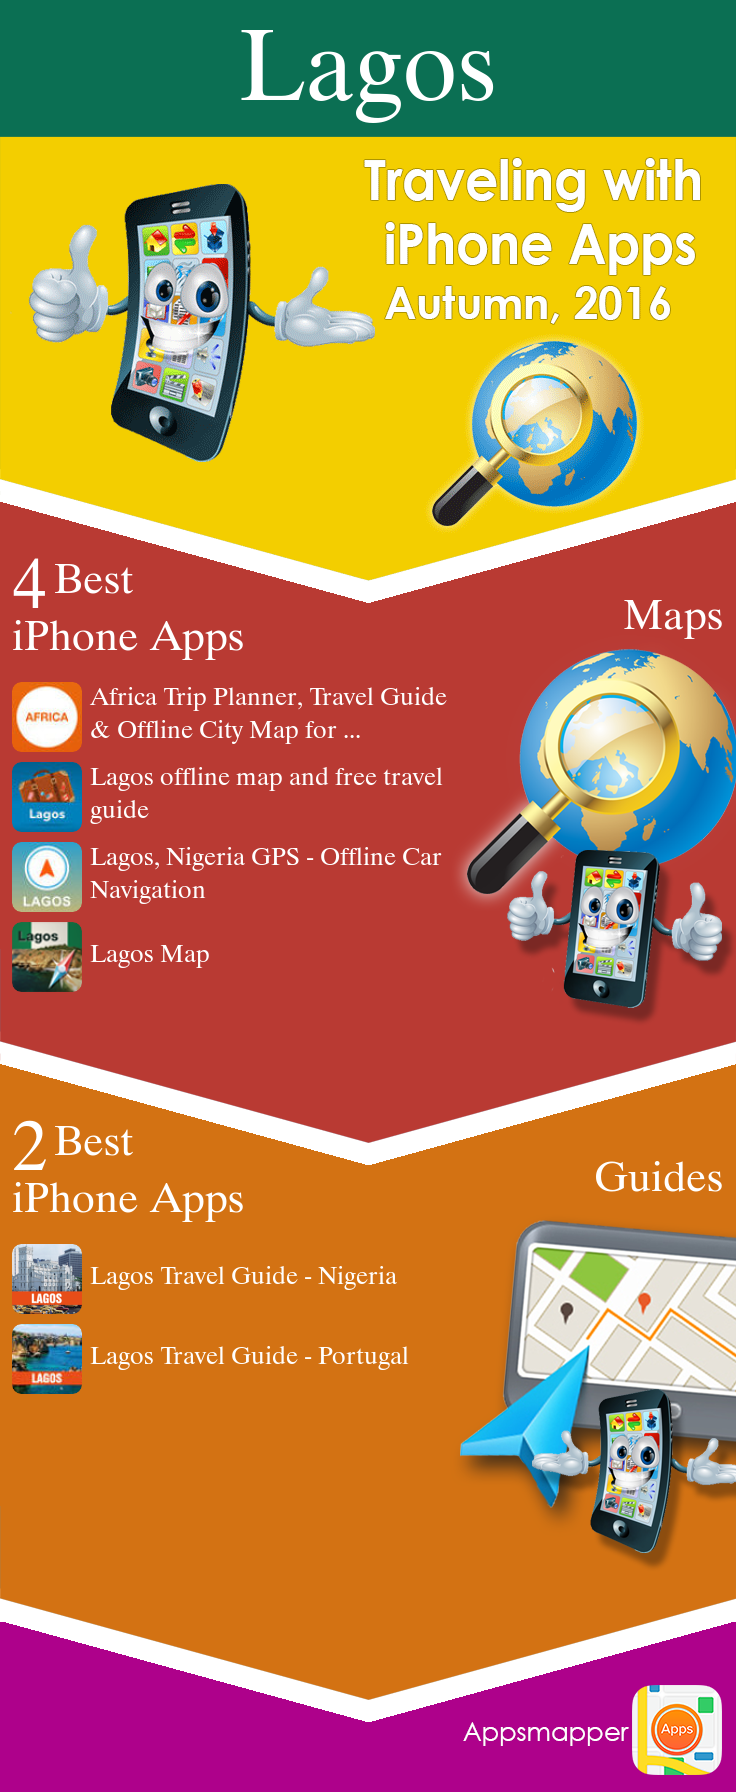 Lagos iPhone apps Travel Guides, Maps, Transportation